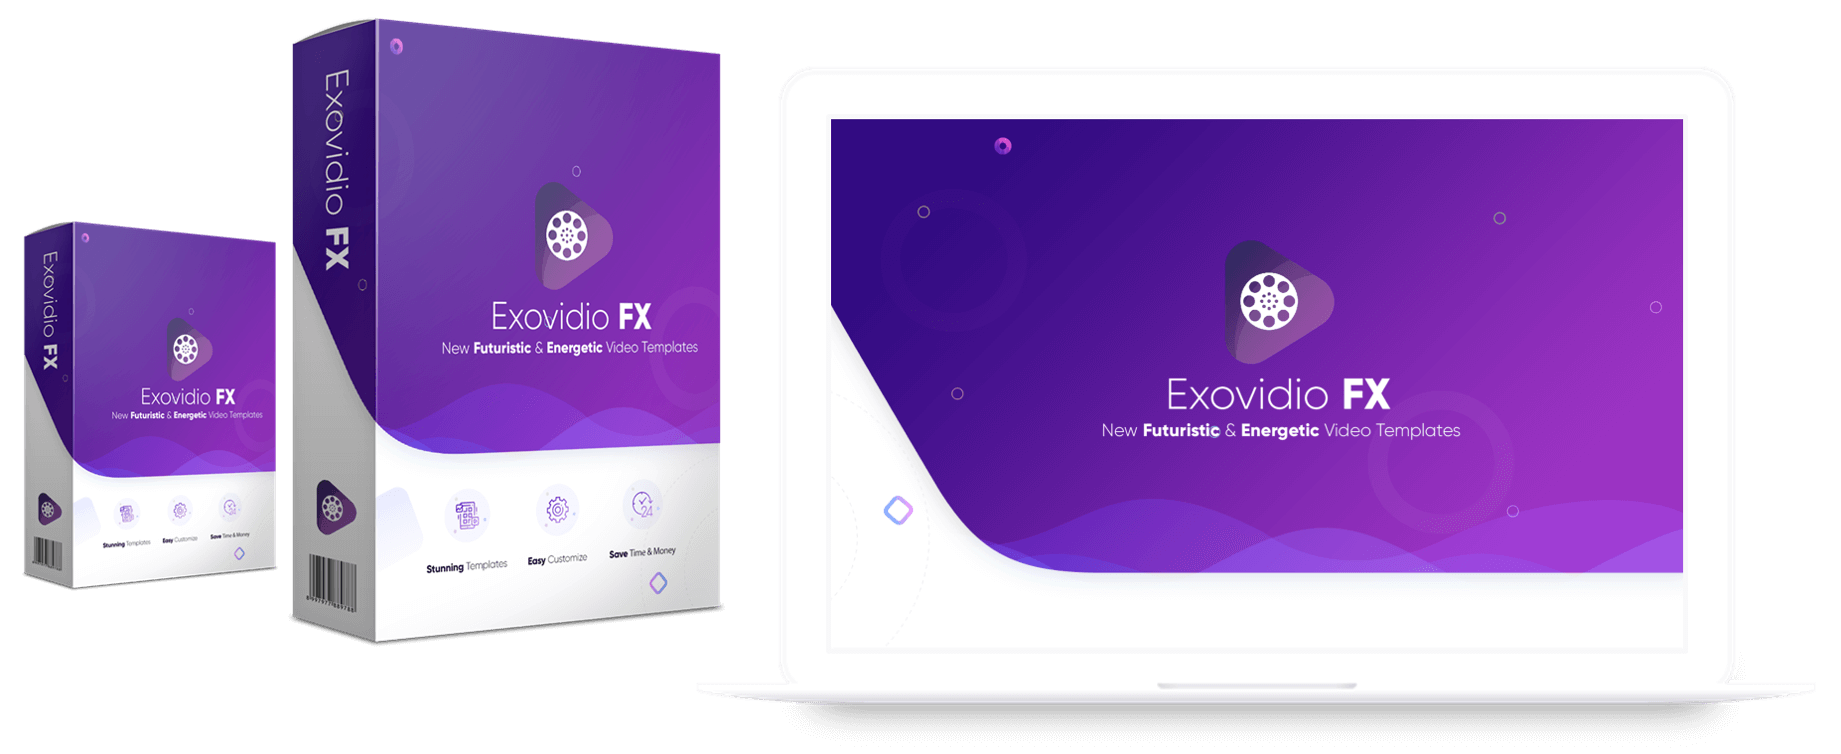 Exovidio-FX-Review